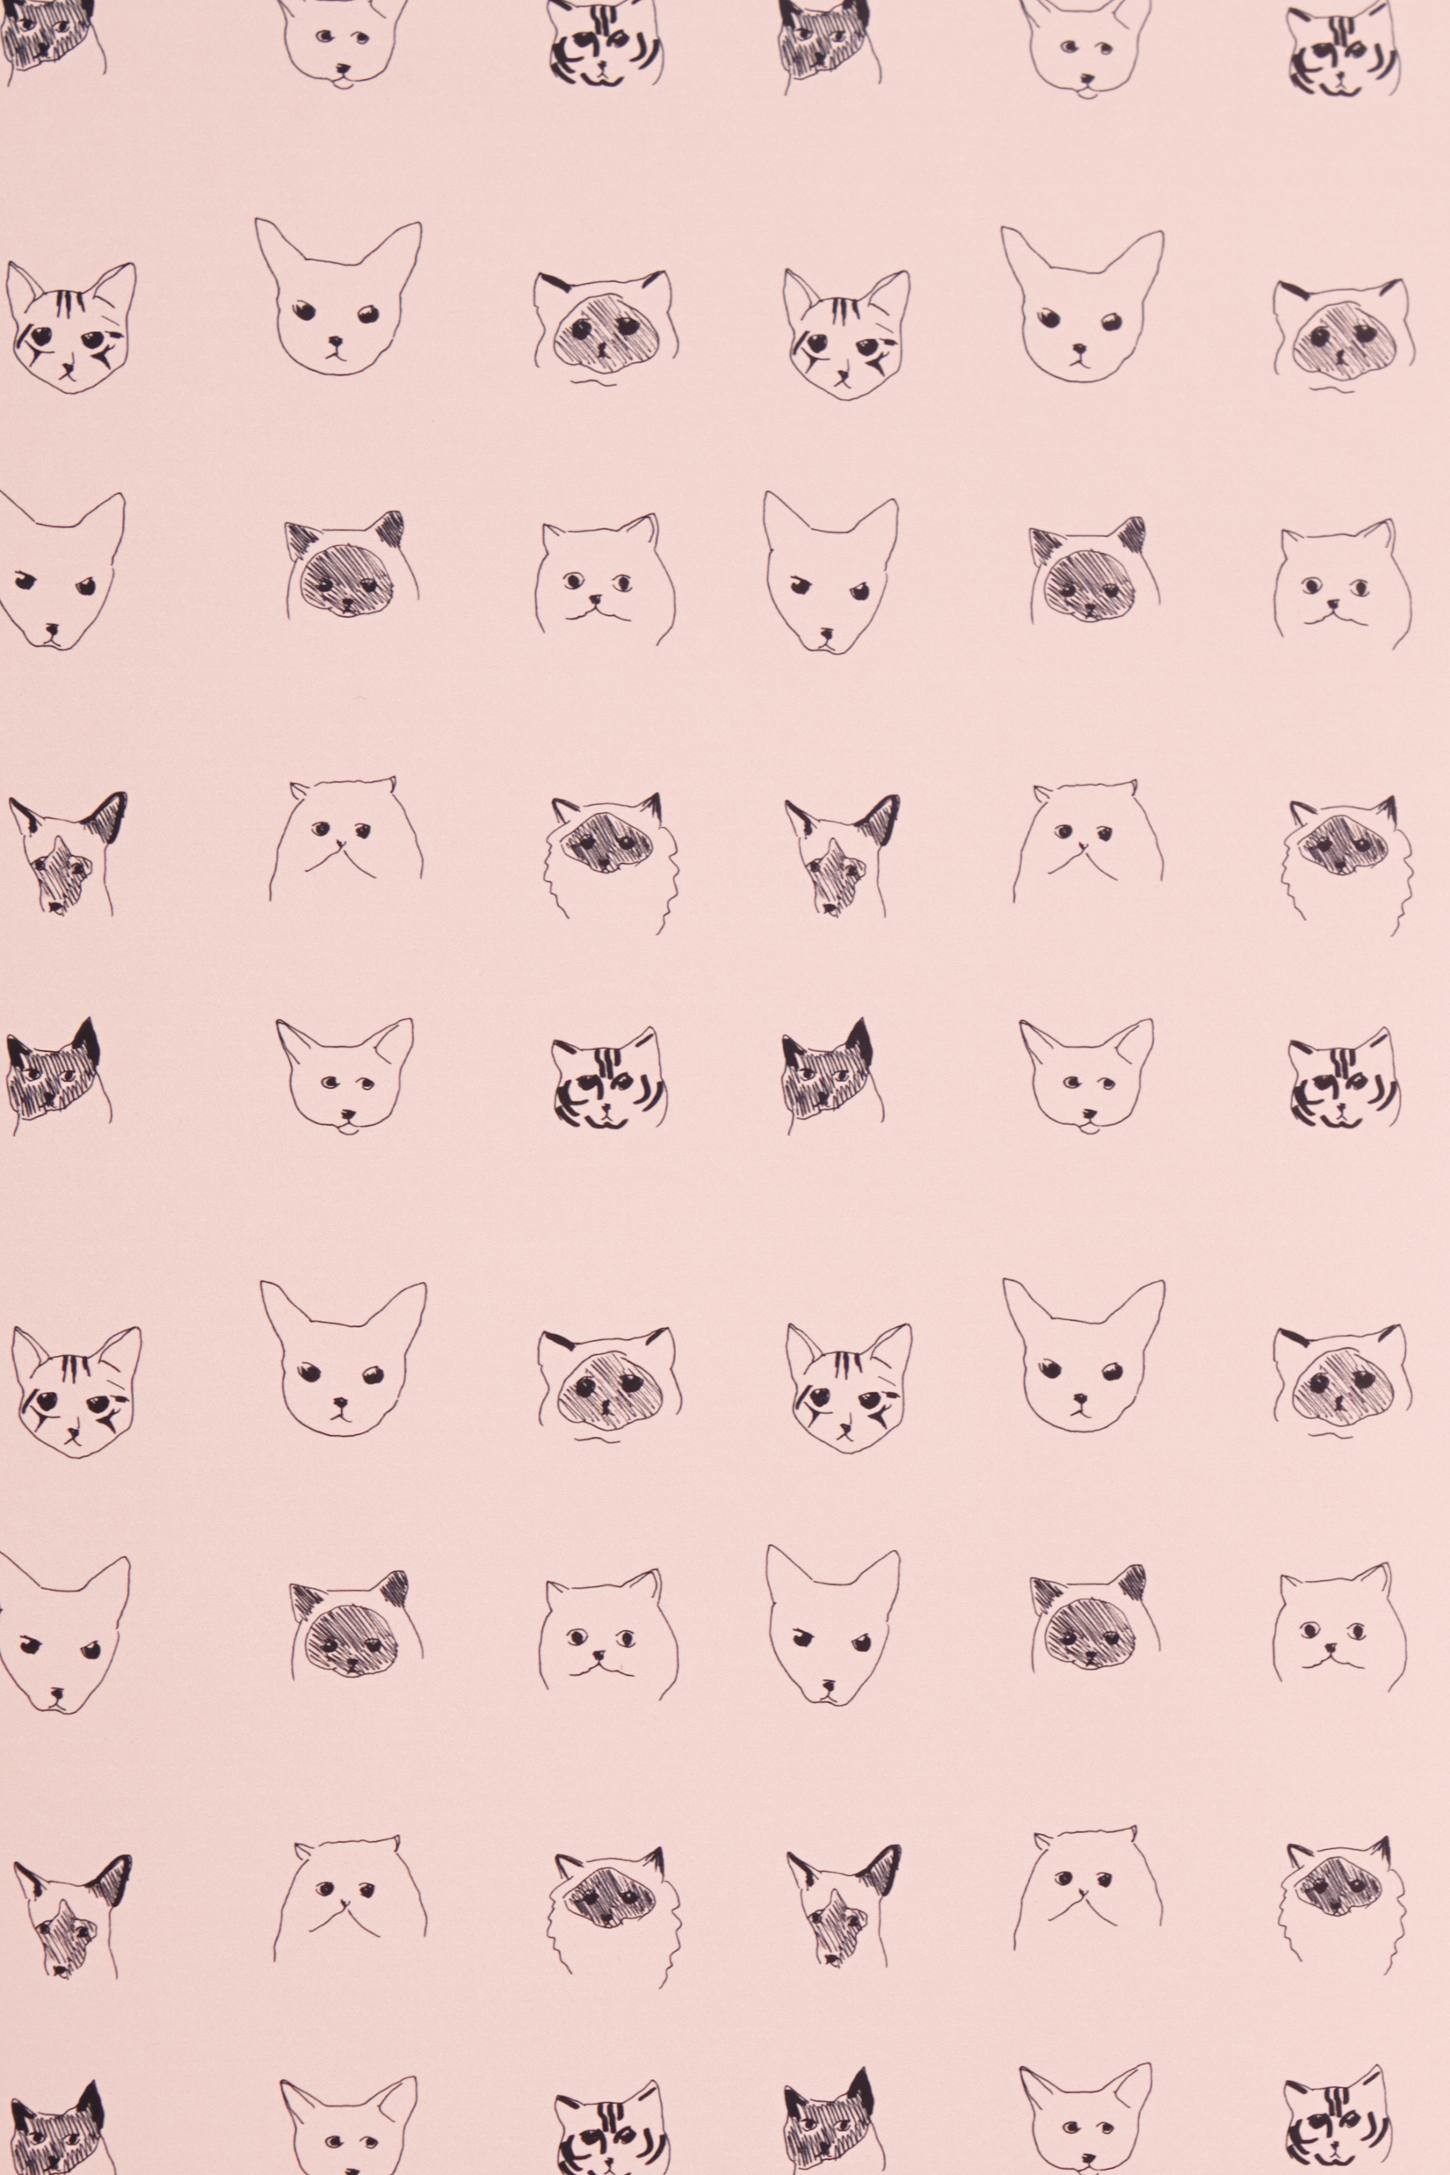 Cat & Dog Wallpaper by Baines & Fricker: too much Crazy Cat Lady?